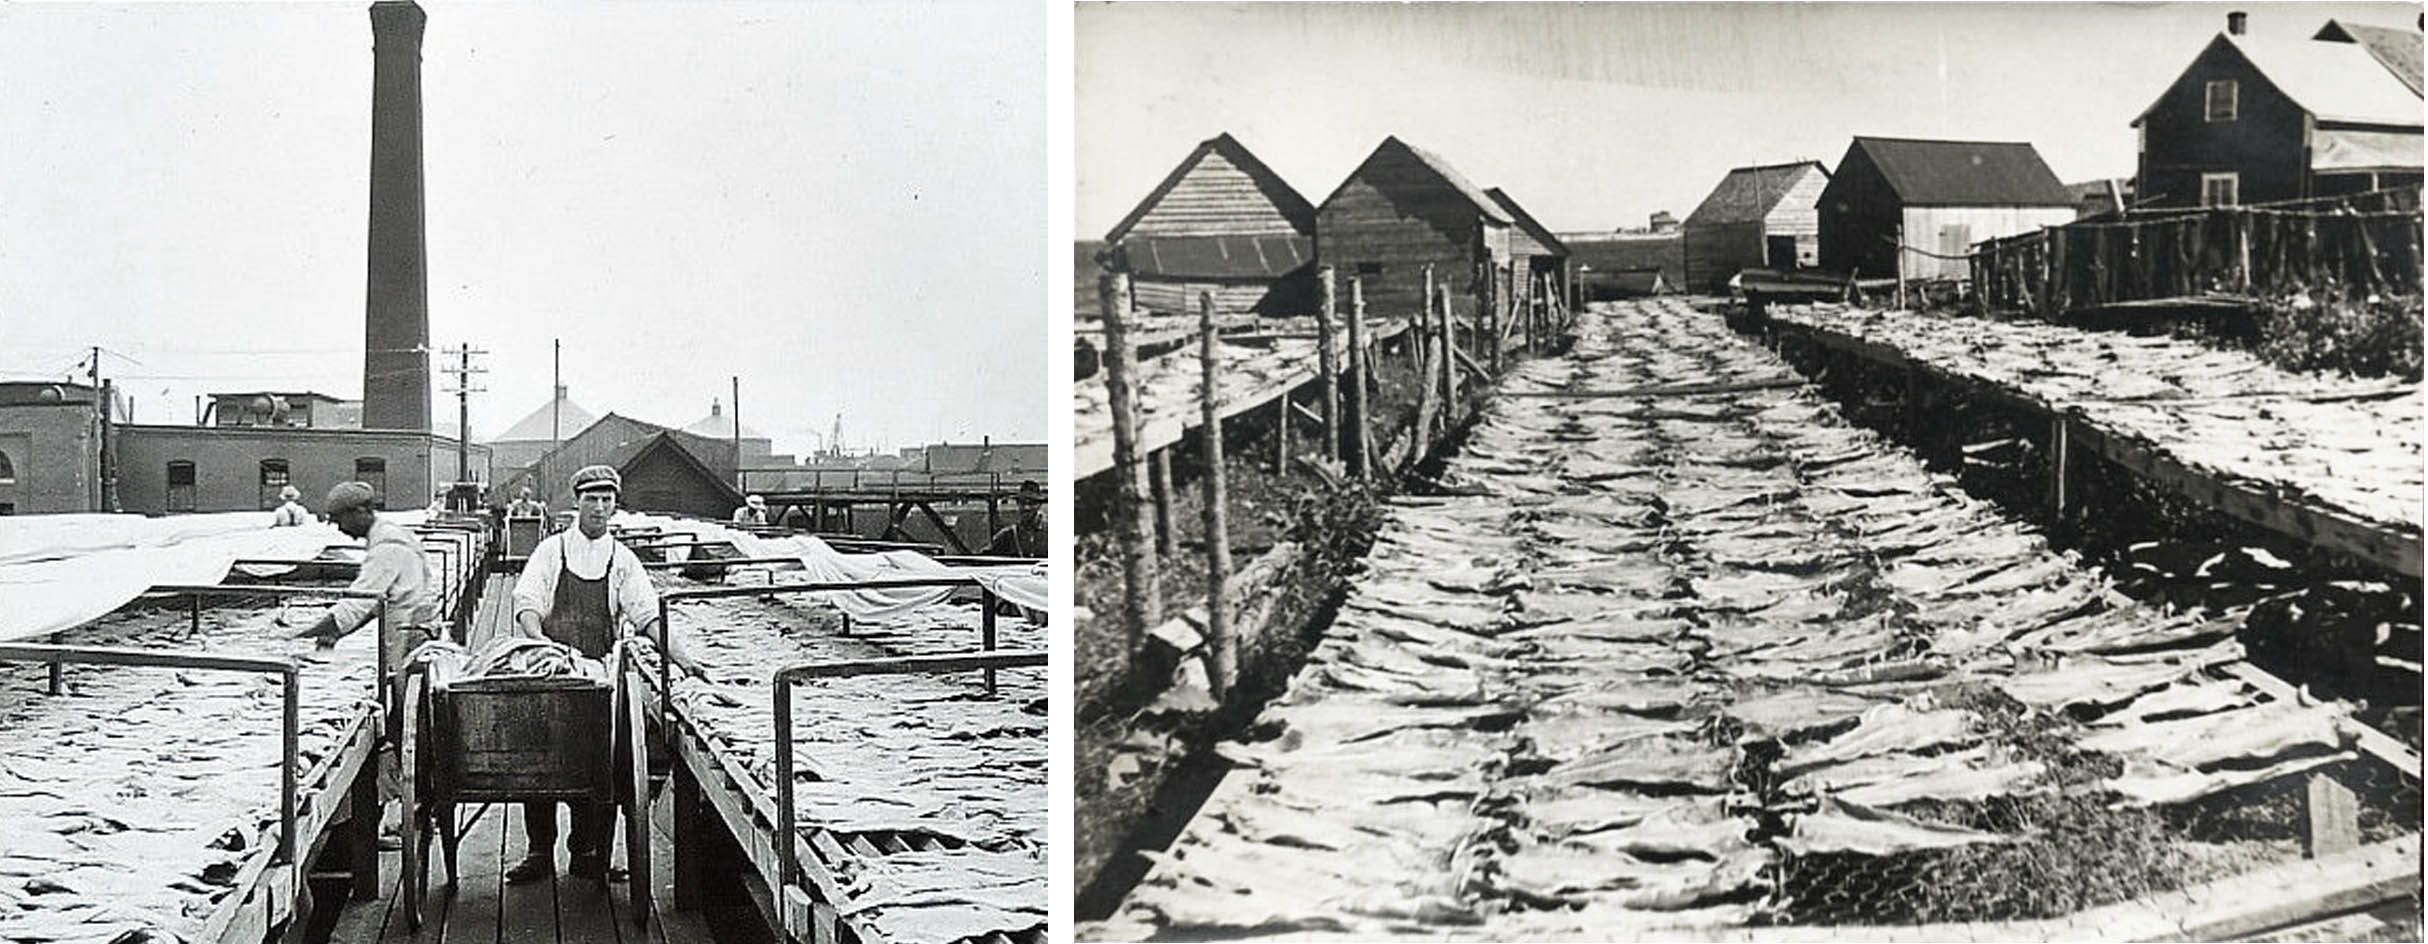 images of flake yards